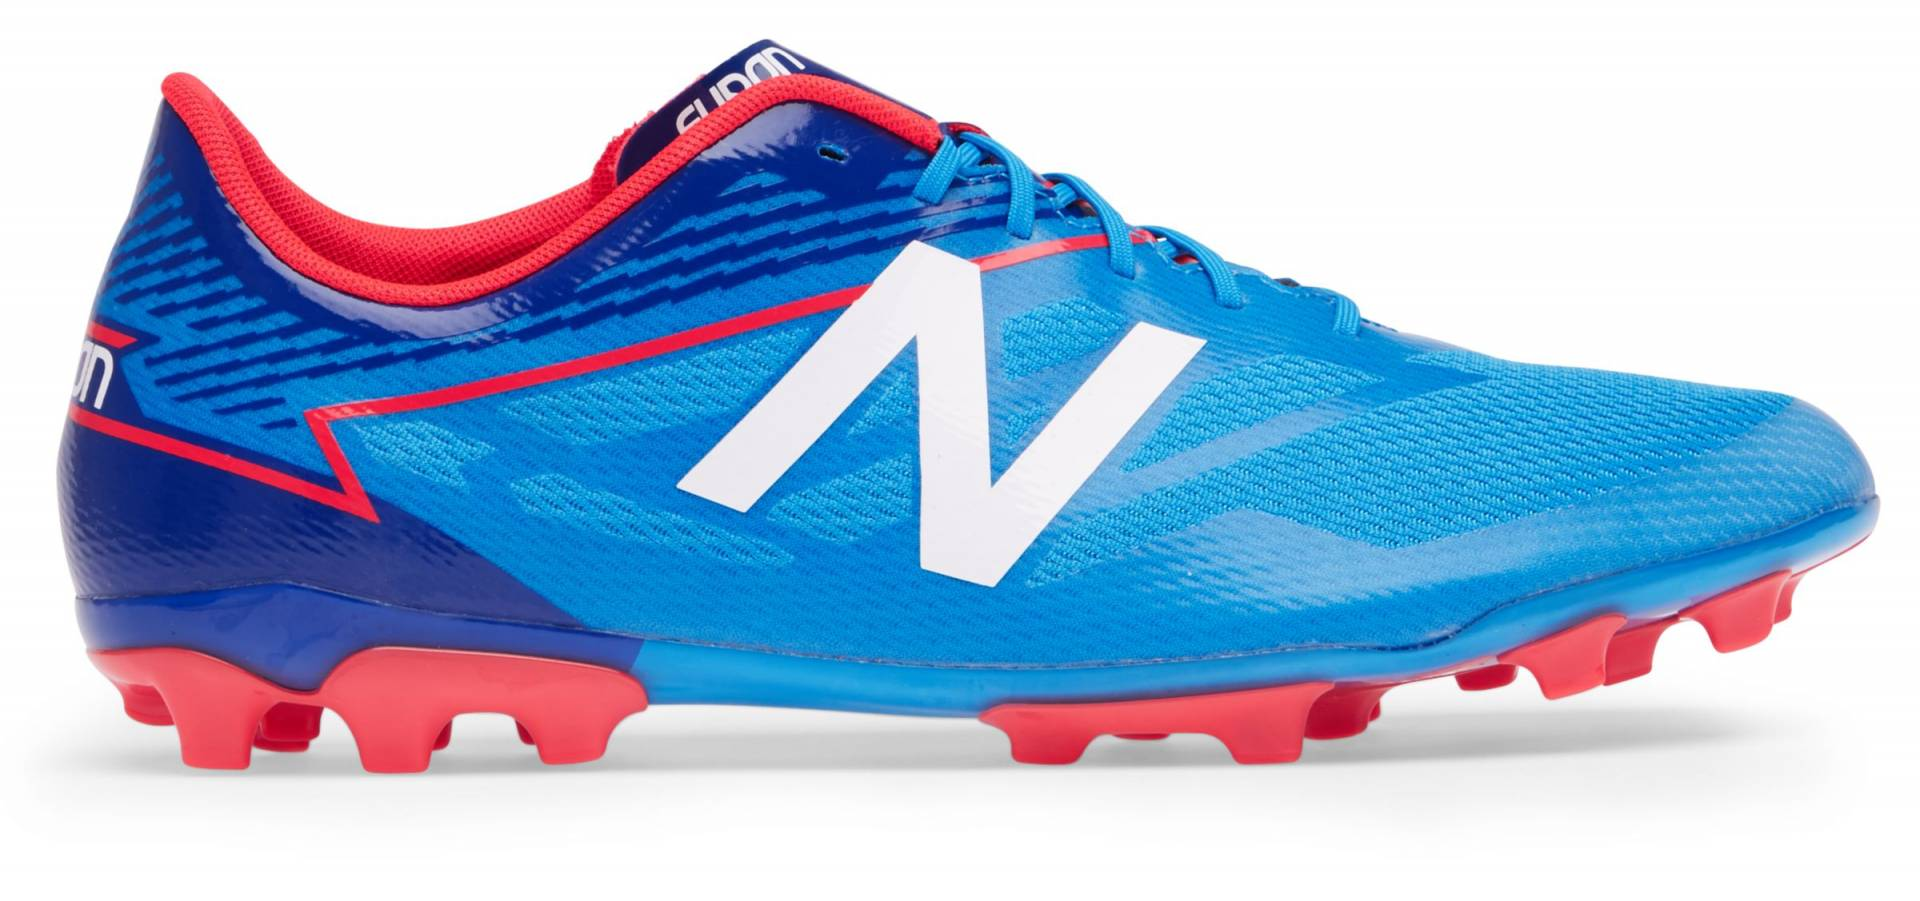 Furon 3.0 Mid AG de Bolt with Team Royal & Energy Red